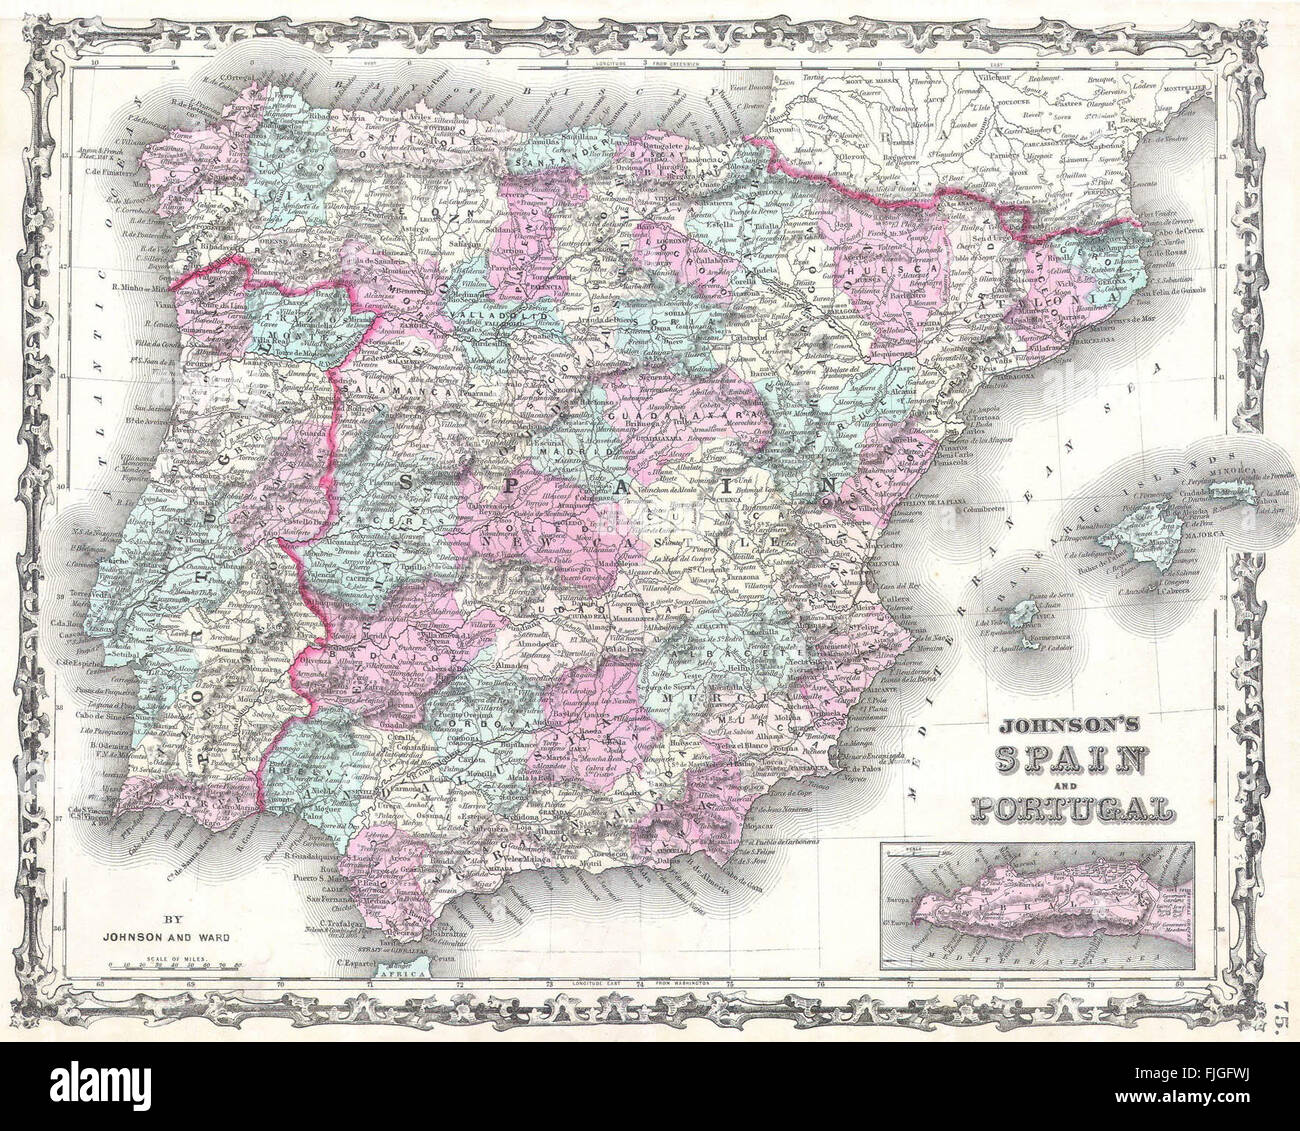 Historical Map Spain Portugal Stock Photo Royalty Free Image - Spain historical map